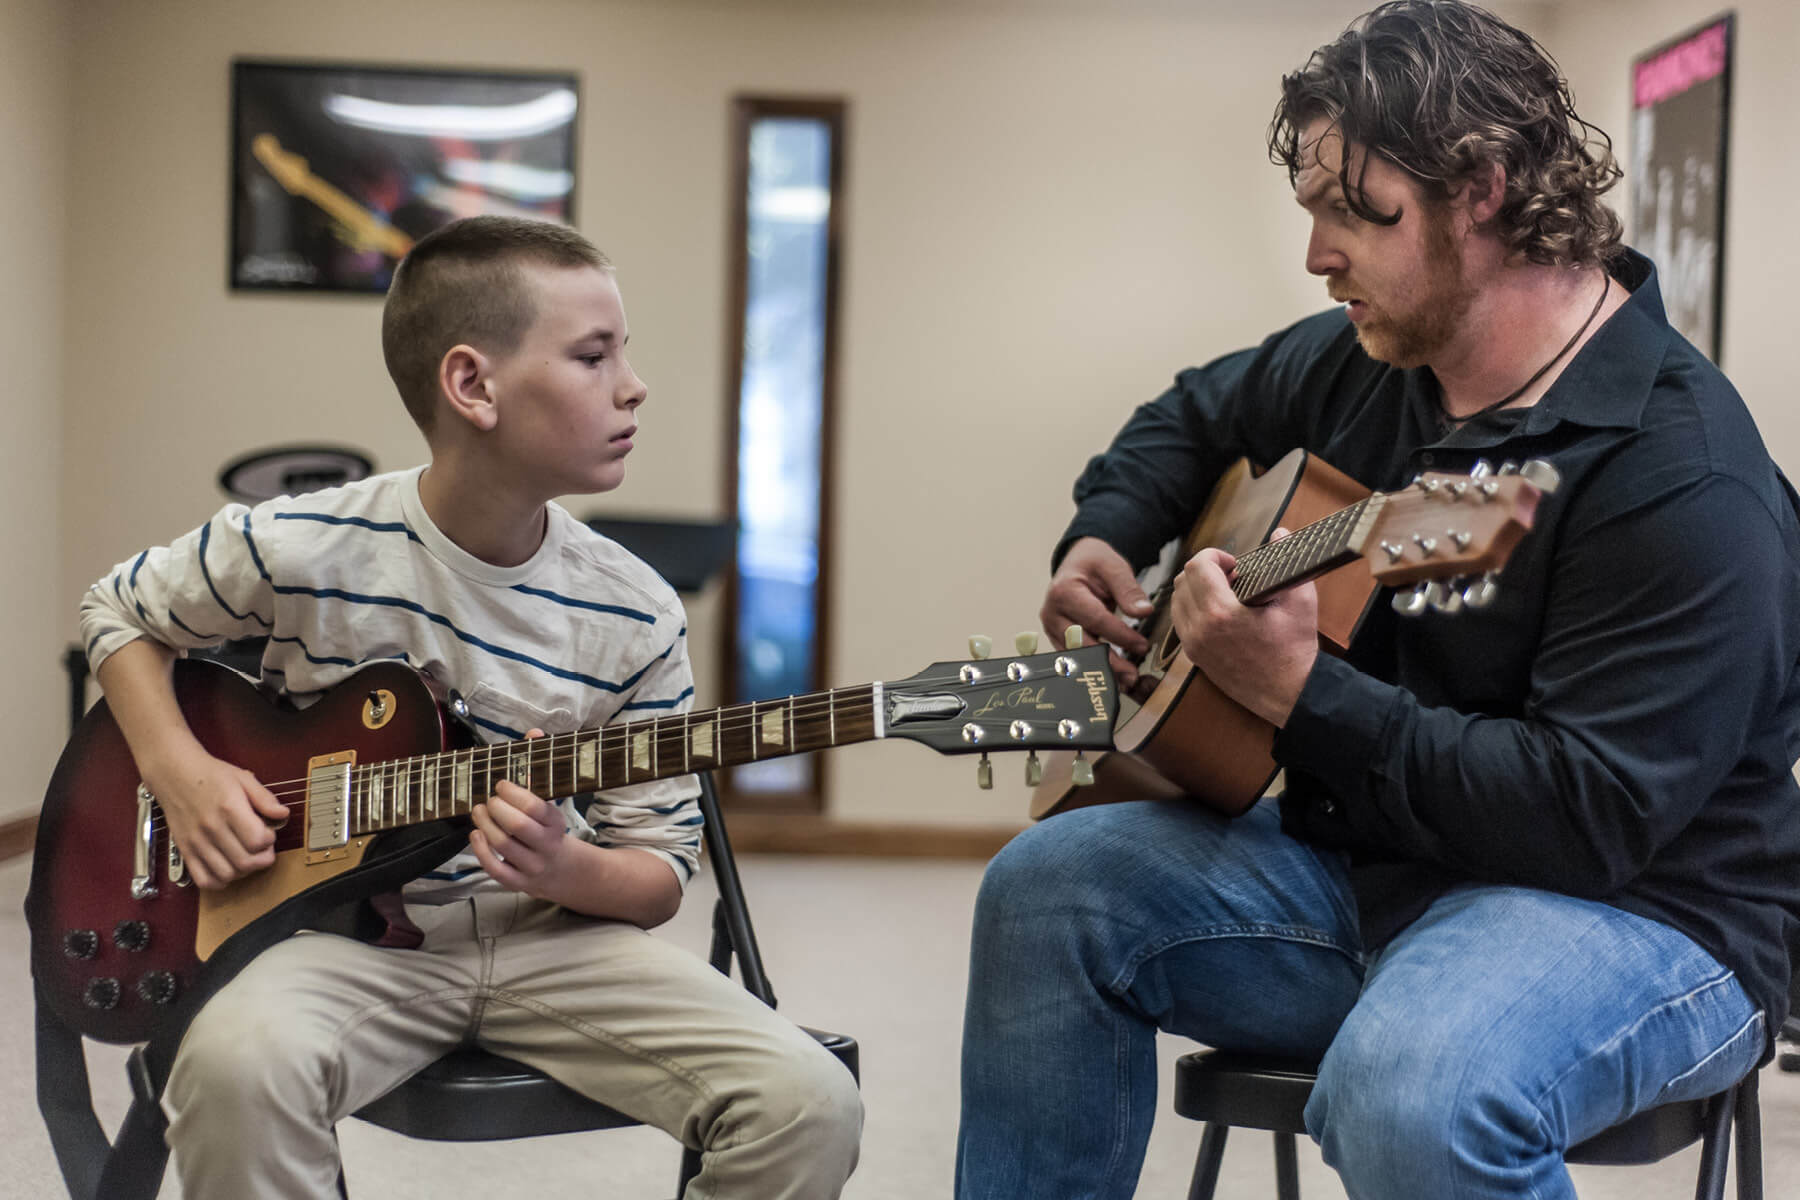 Guitar lessons with Lexington School of Music instructor.